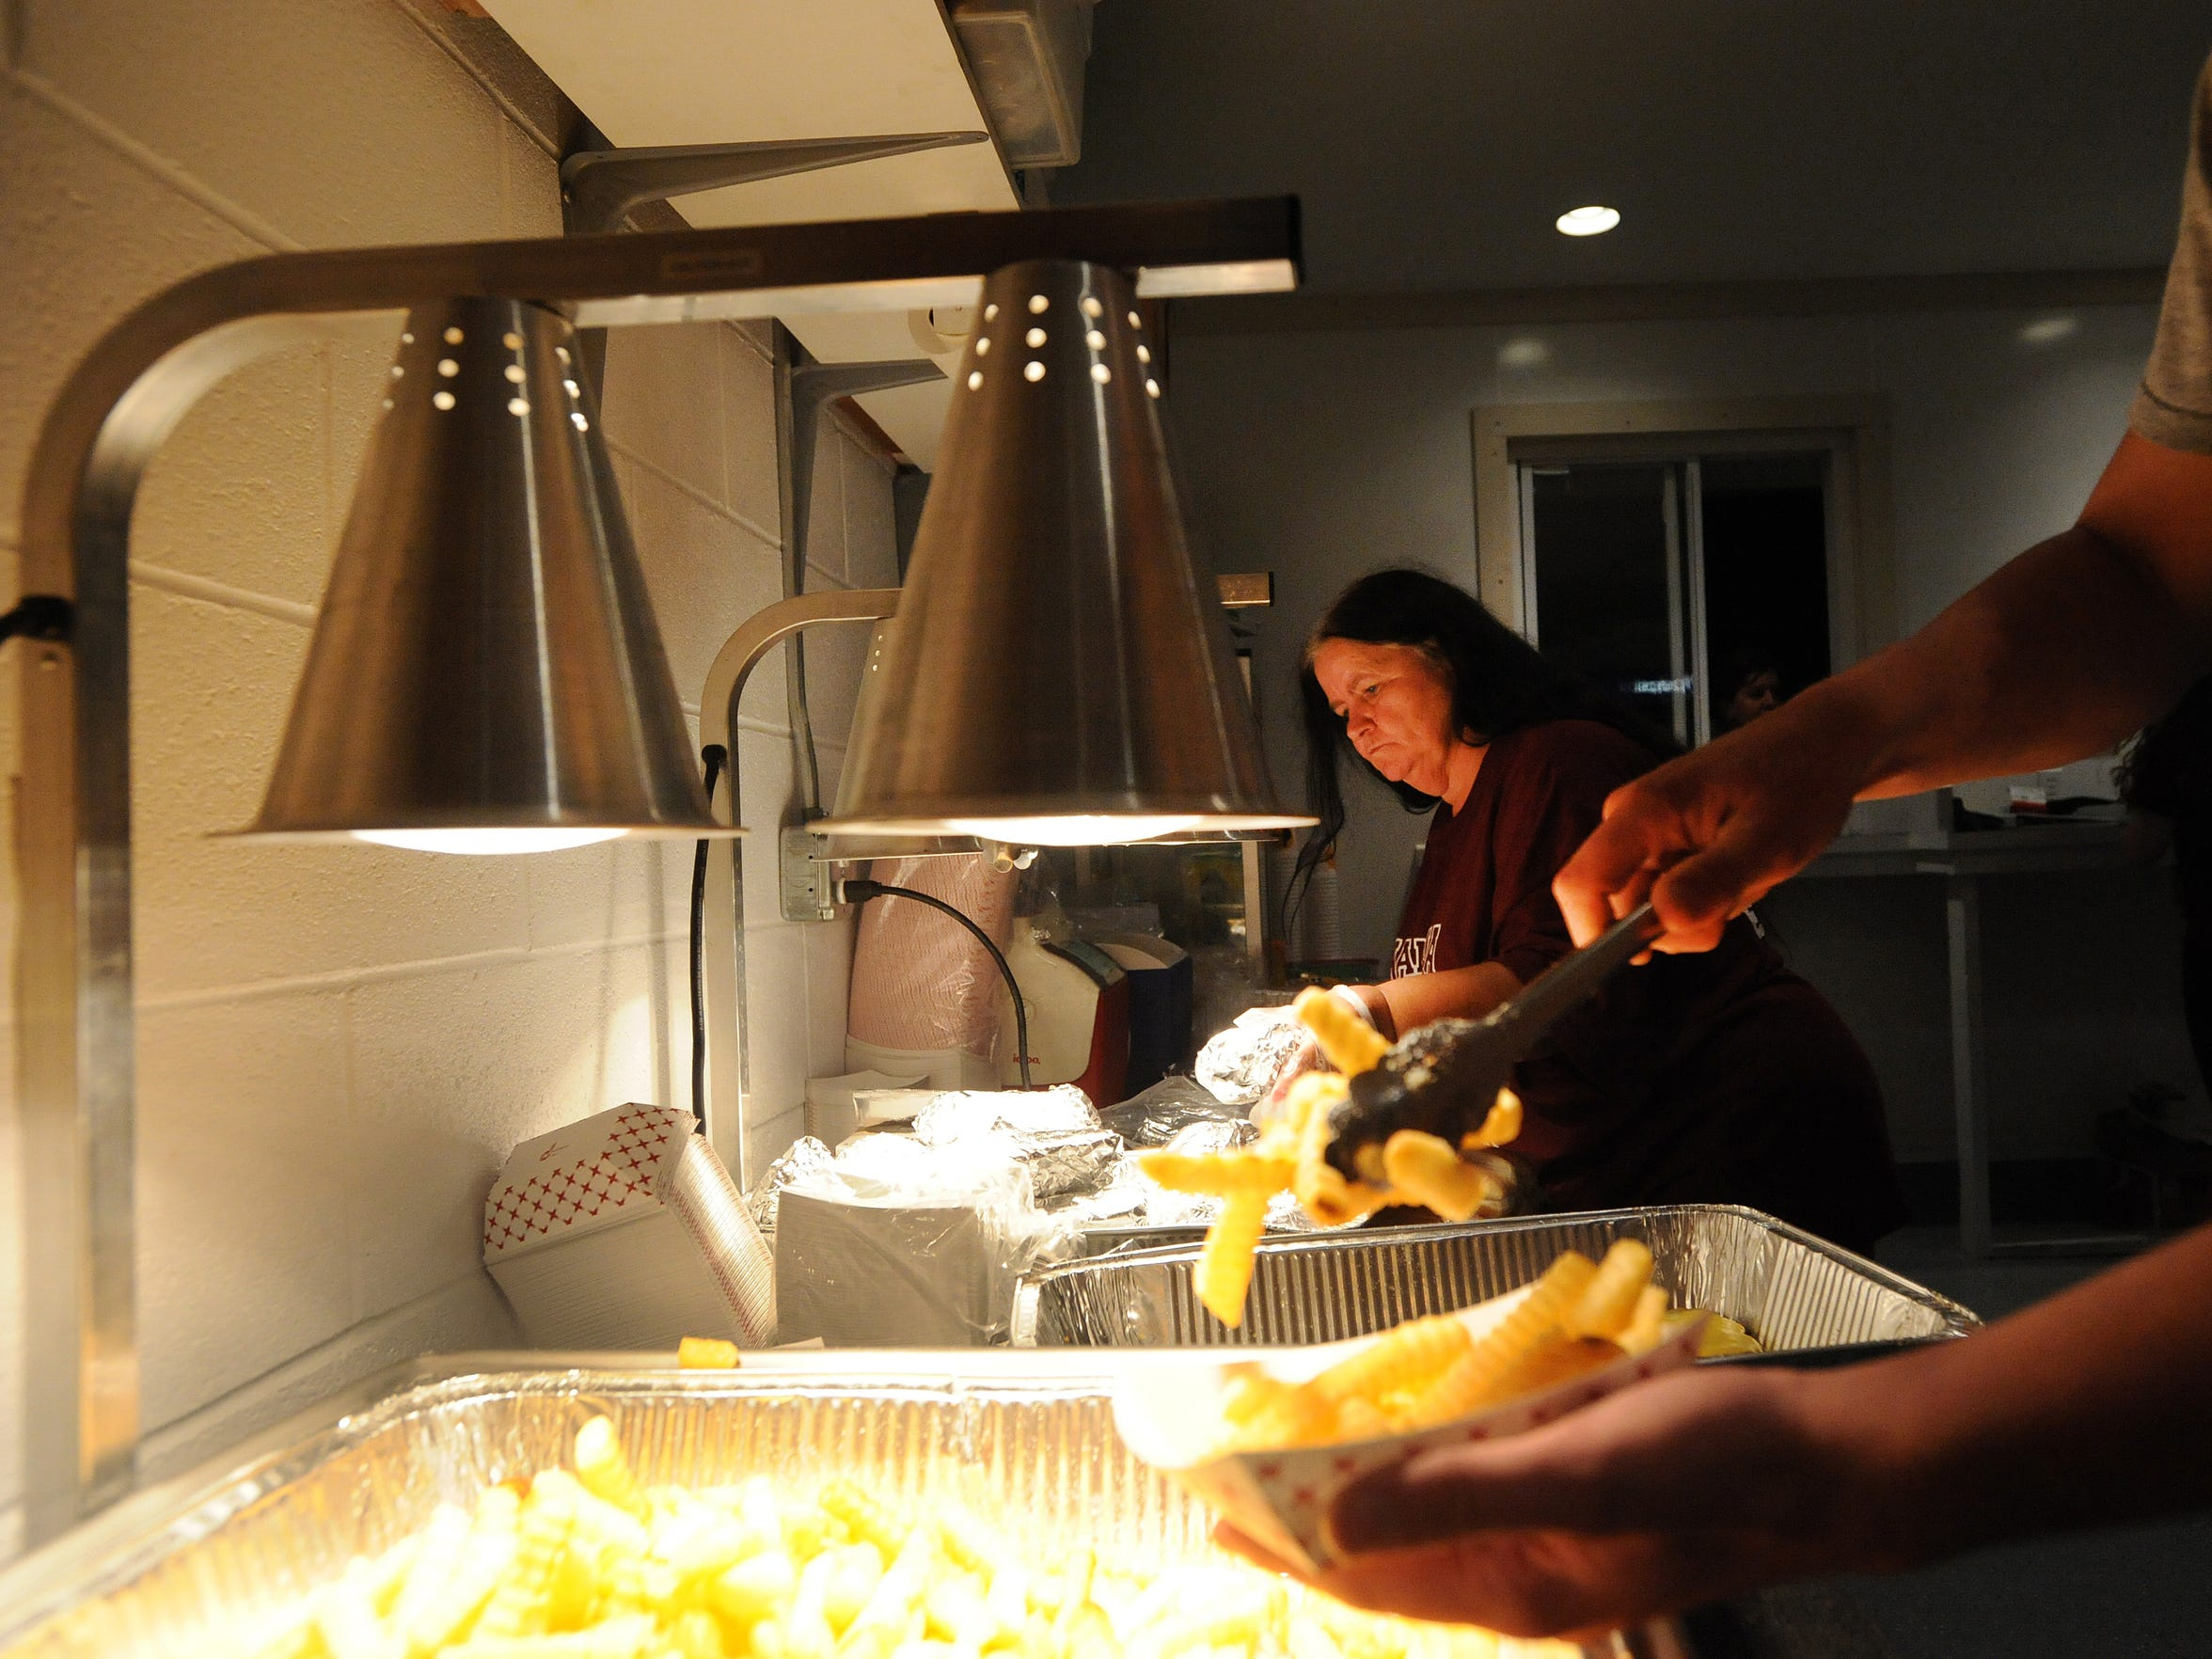 Betty Colona preps burgers for customers in the Nandua concession stand during halftime of a game on Friday, Oct. 3, 2014.